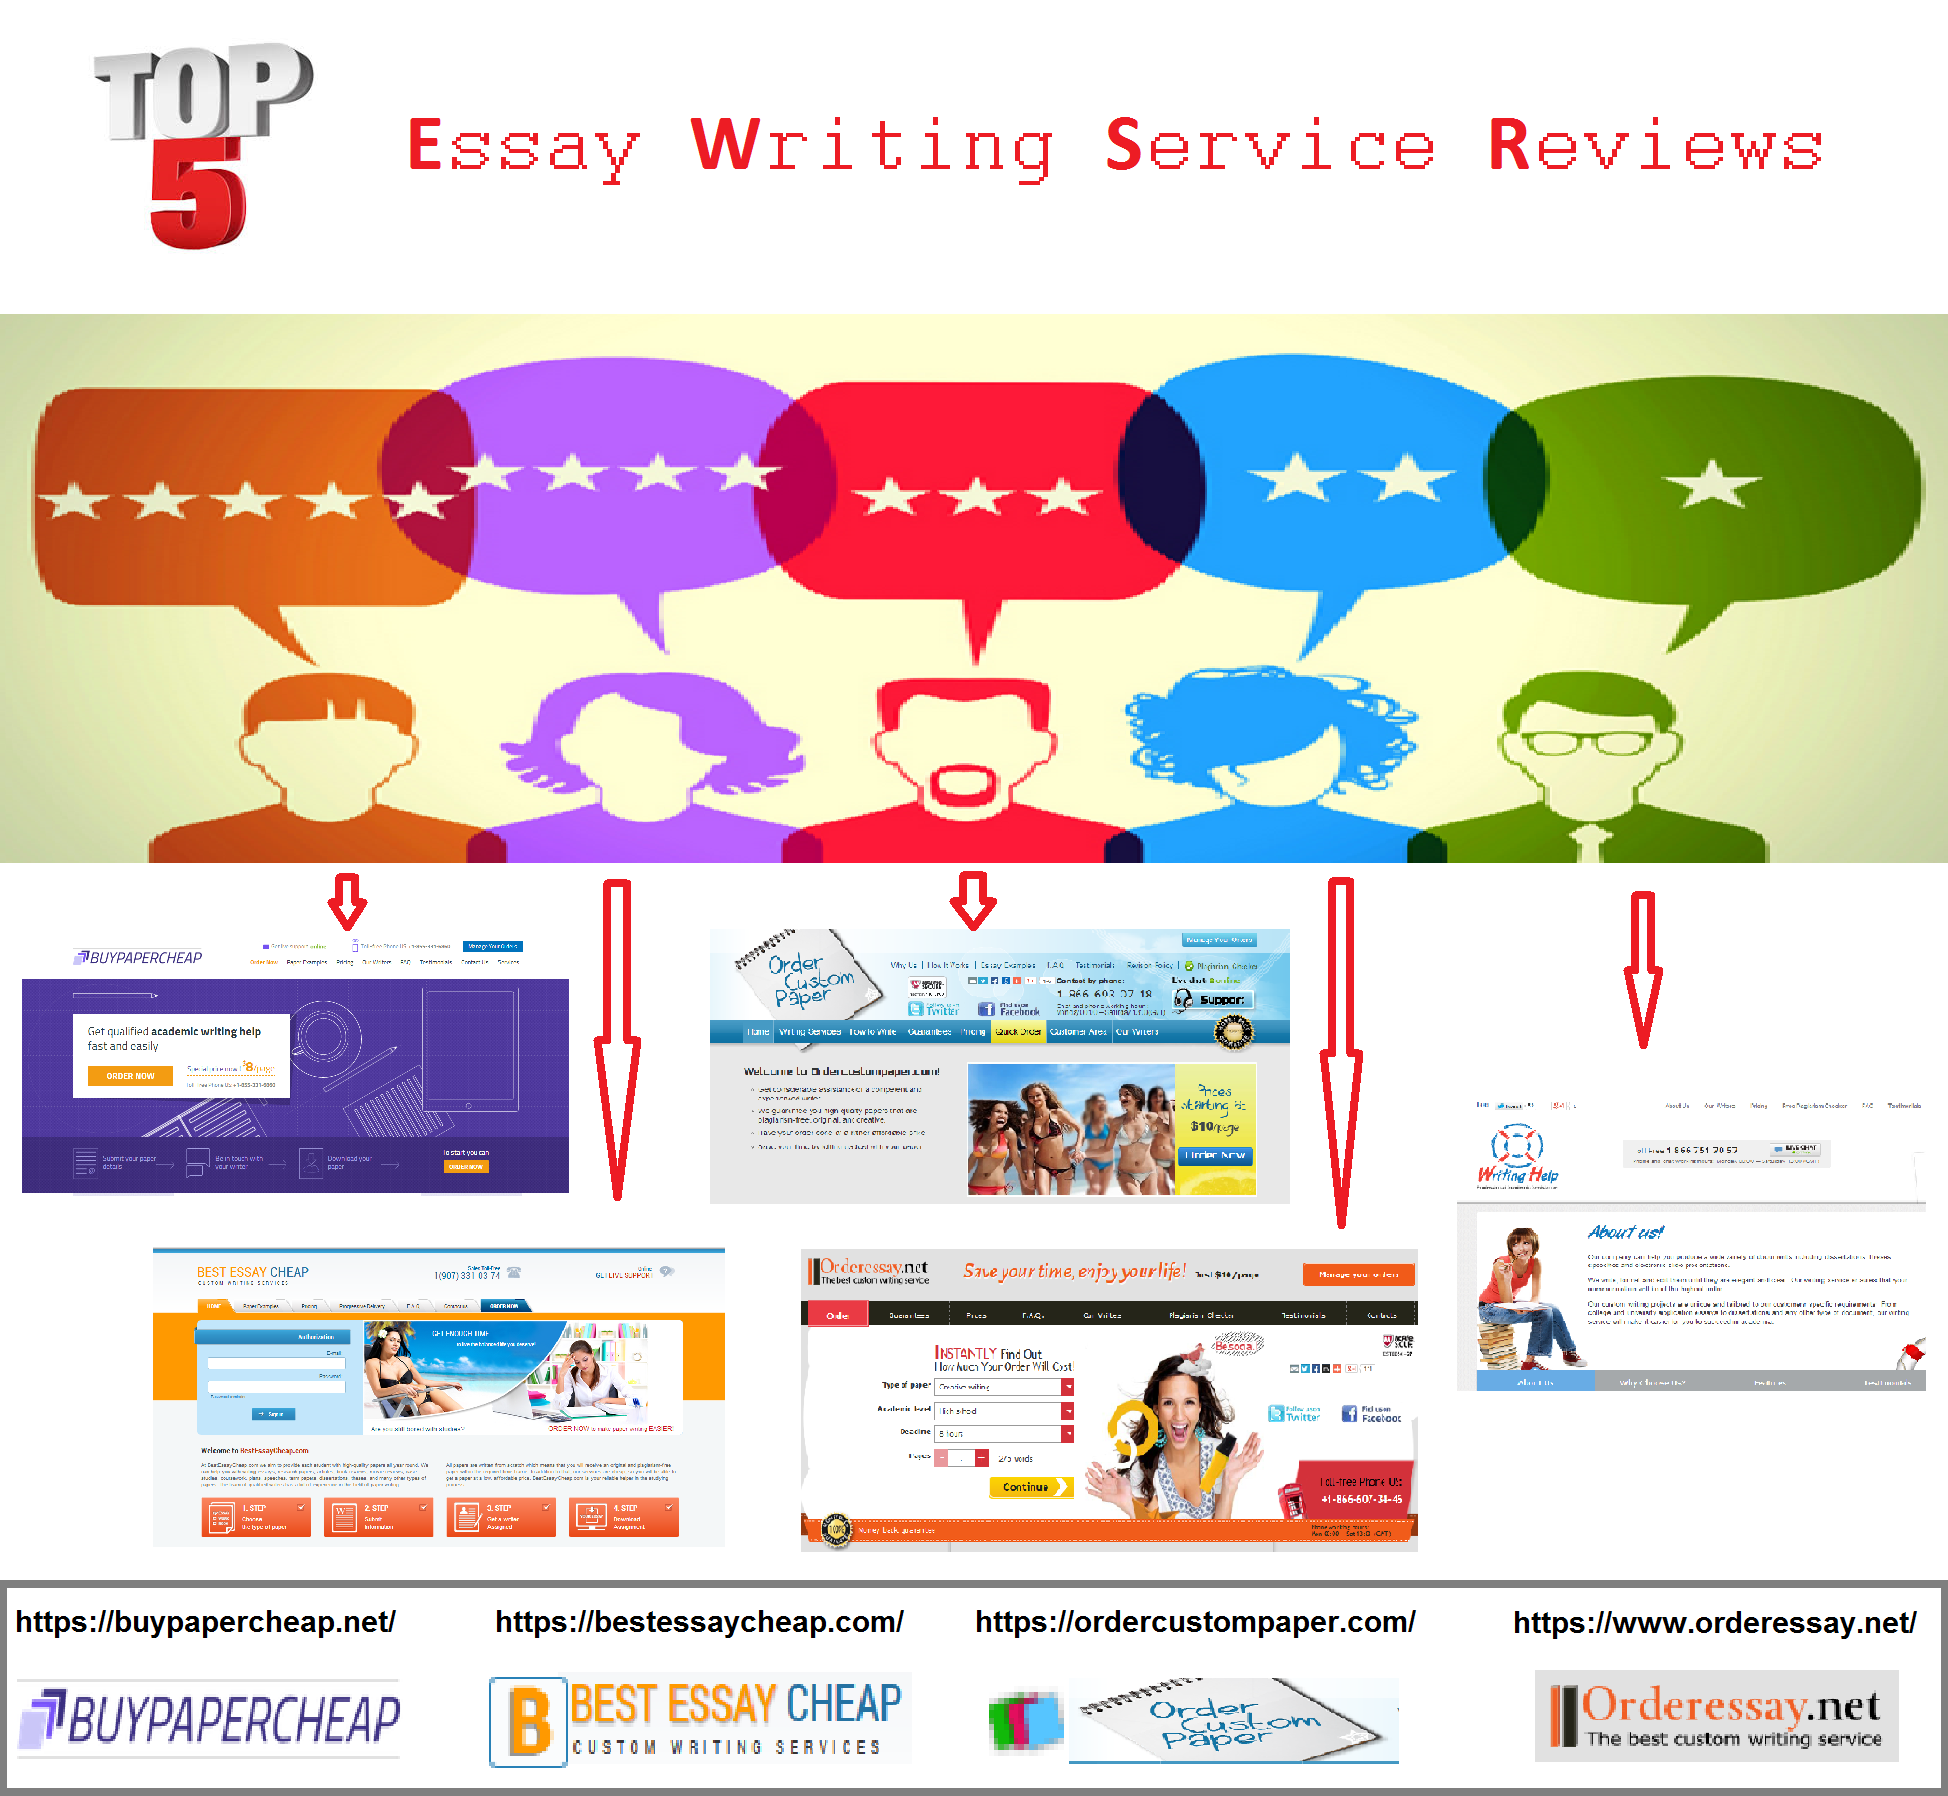 001 Essay Writing Service Reviews Custom Services From Best Essays Paper Sites Company Ideas Of Sale Discount Br Singular Australia Pro Full